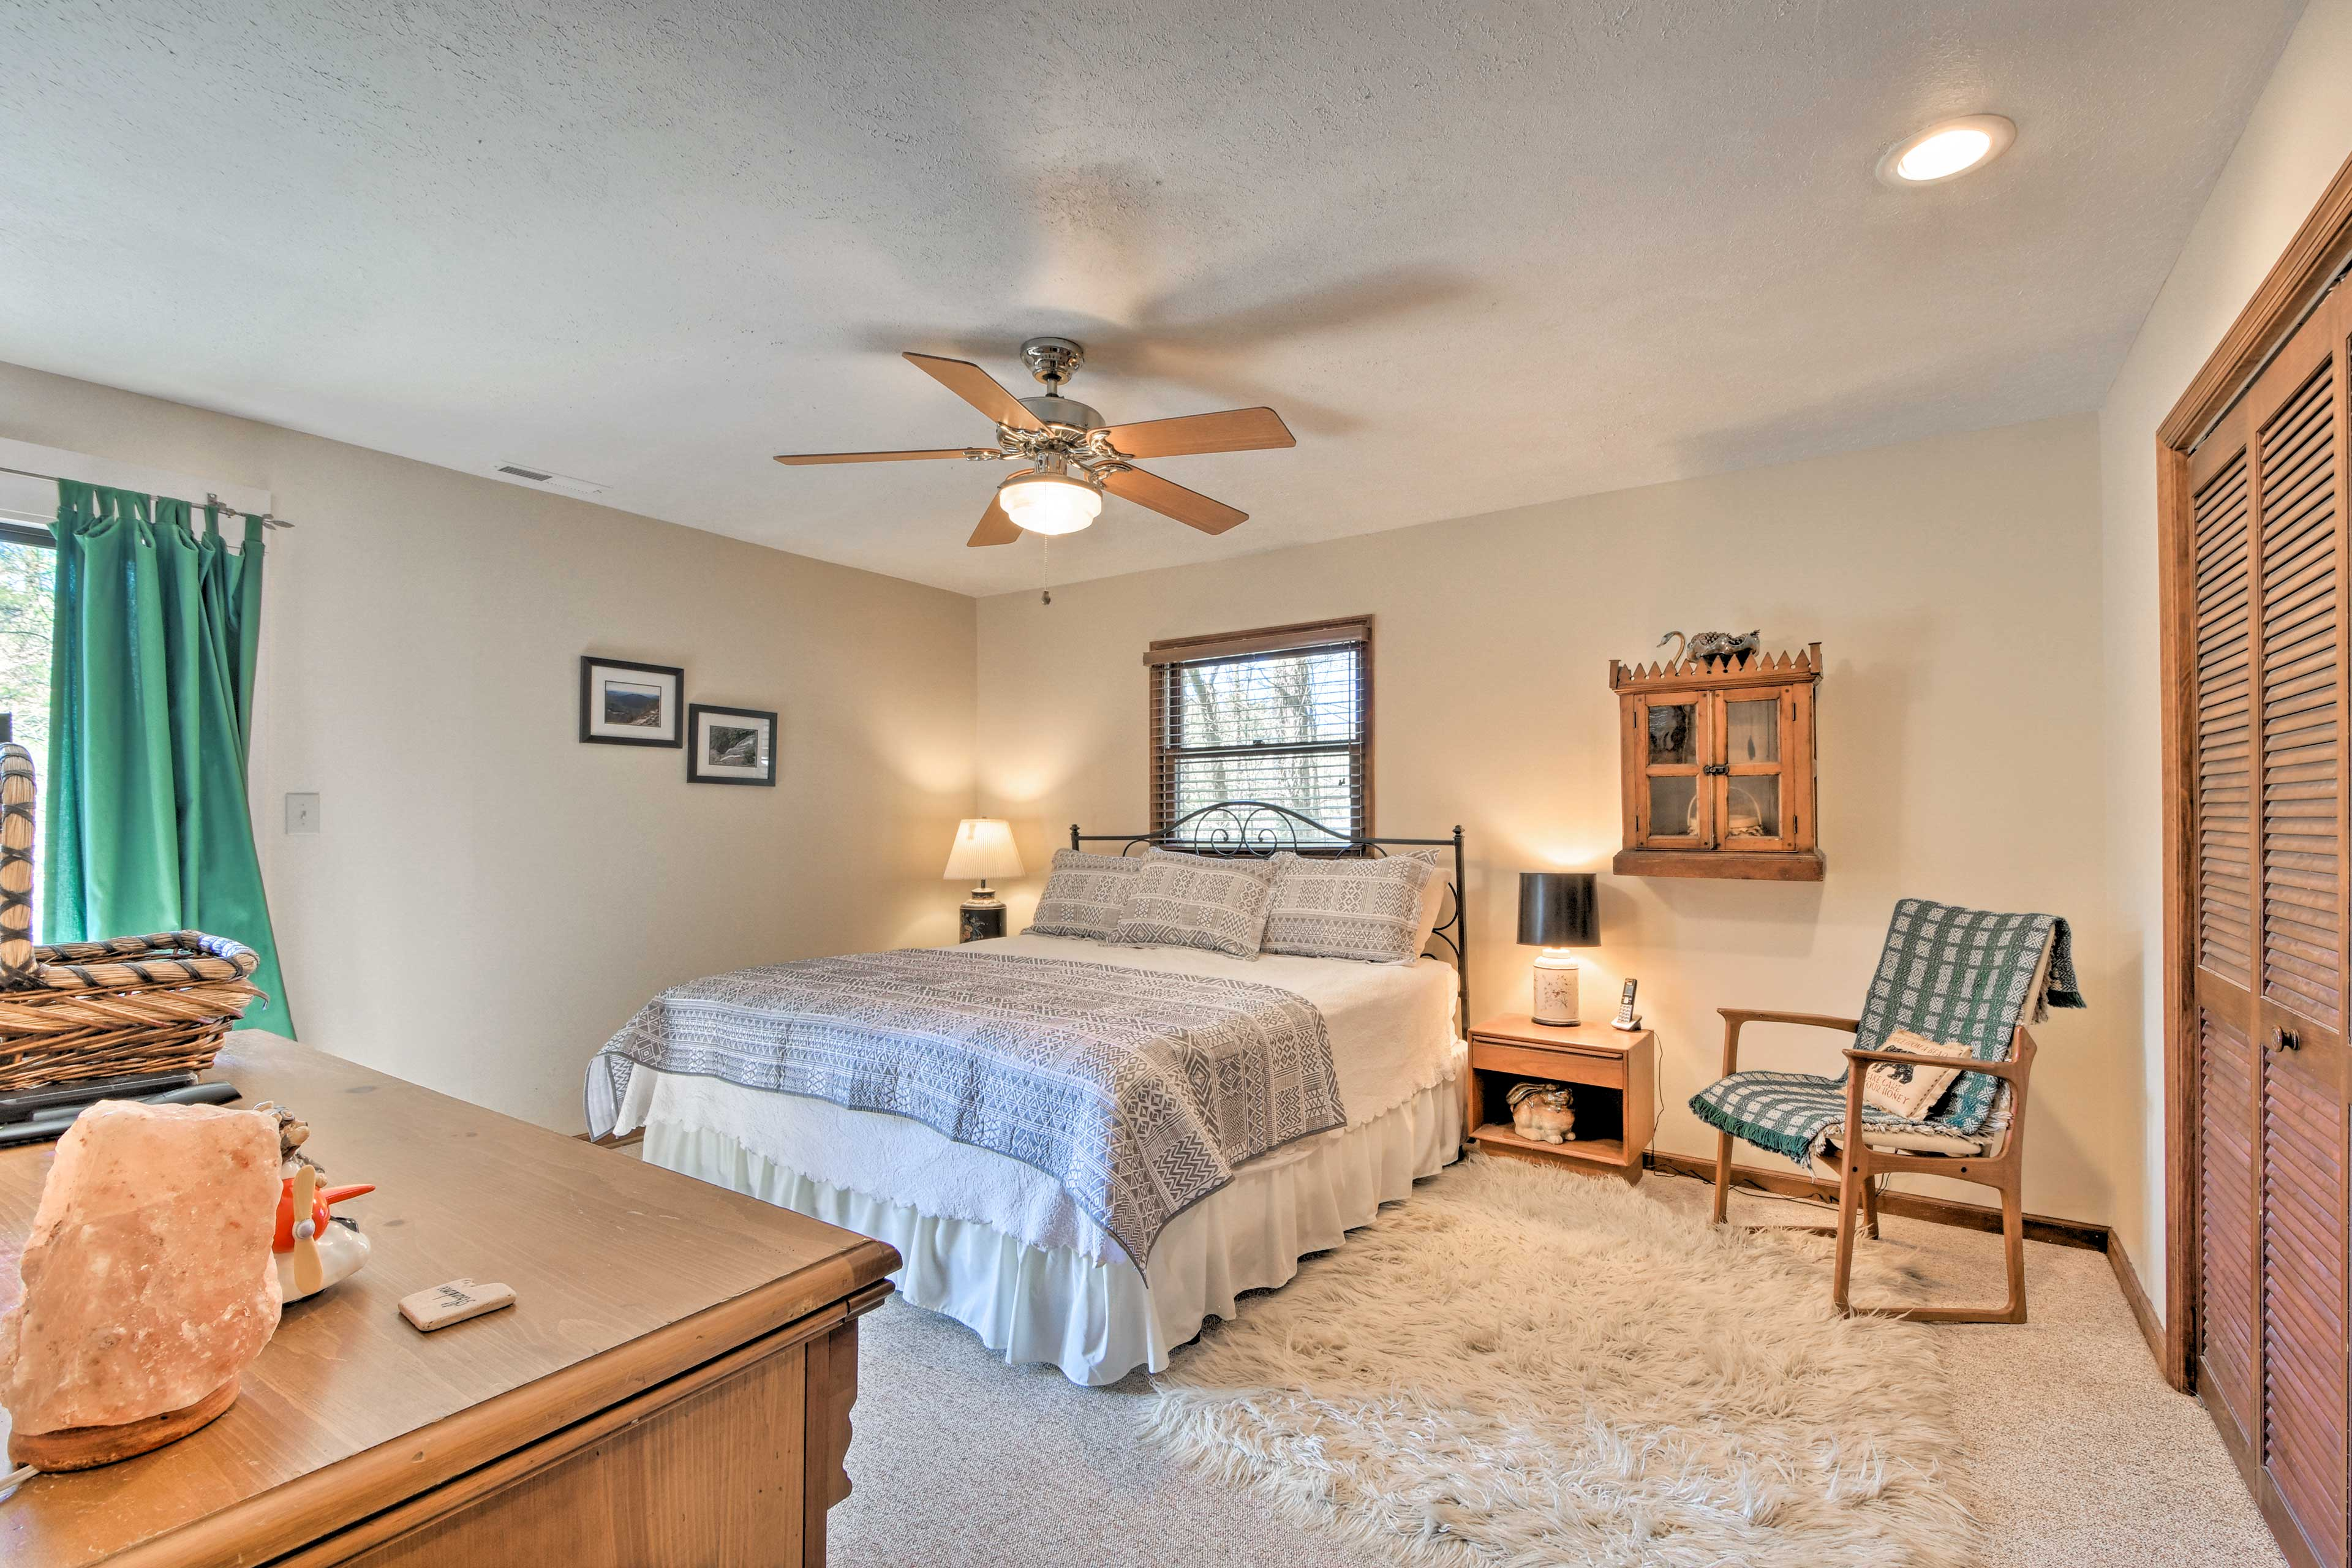 Claim the master bedroom's king bed as your own!